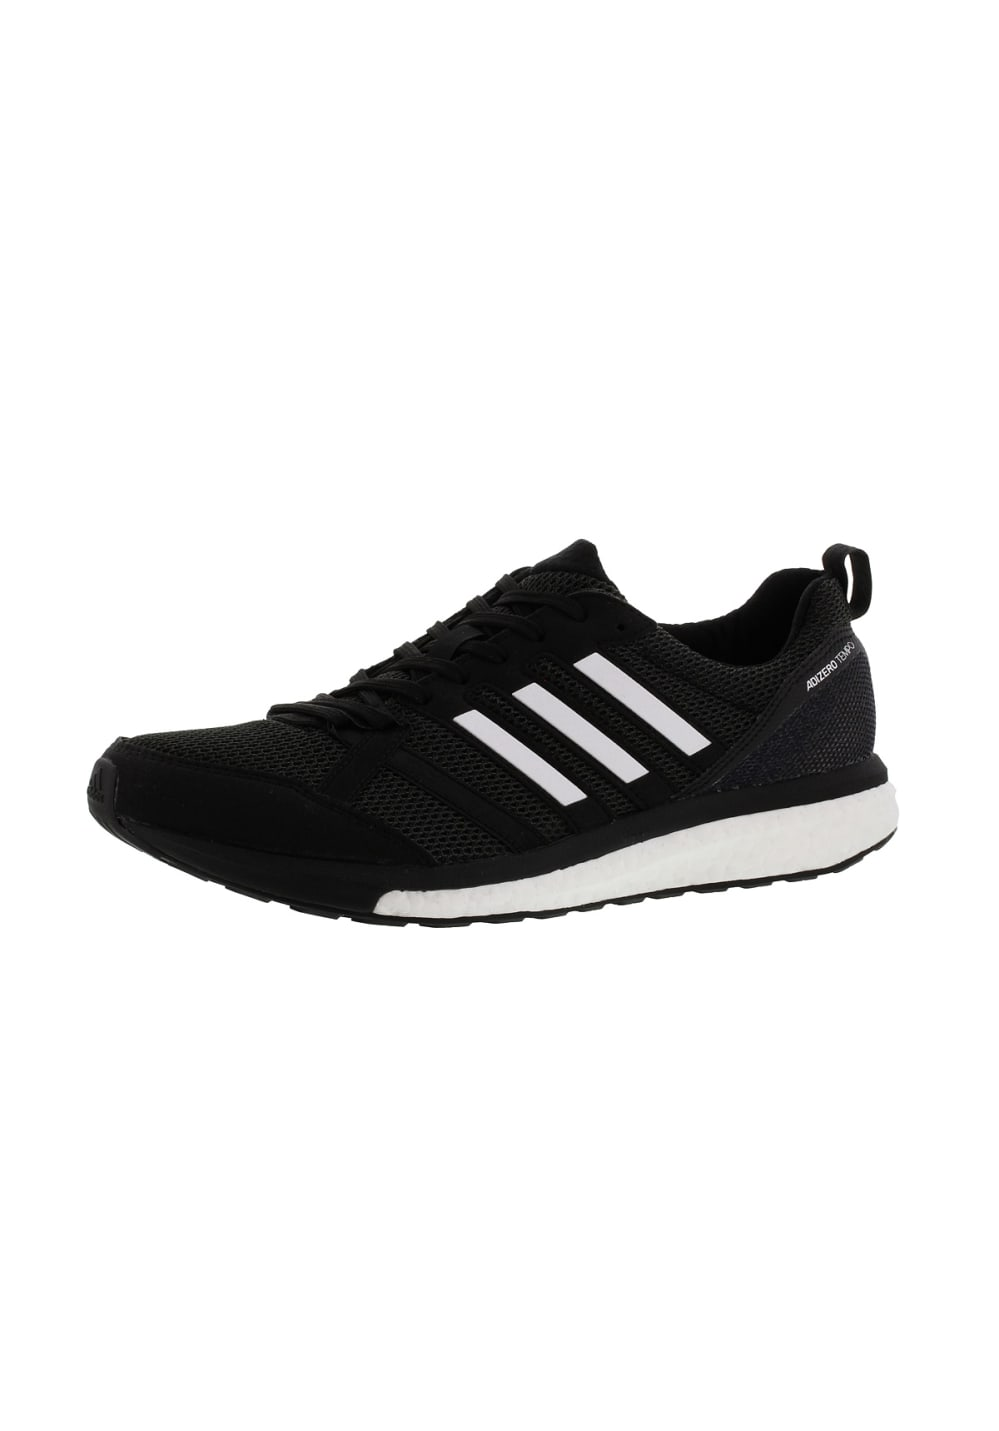 sale retailer 3f20a 78616 adidas adiZero Tempo 9 - Running shoes for Men - Black